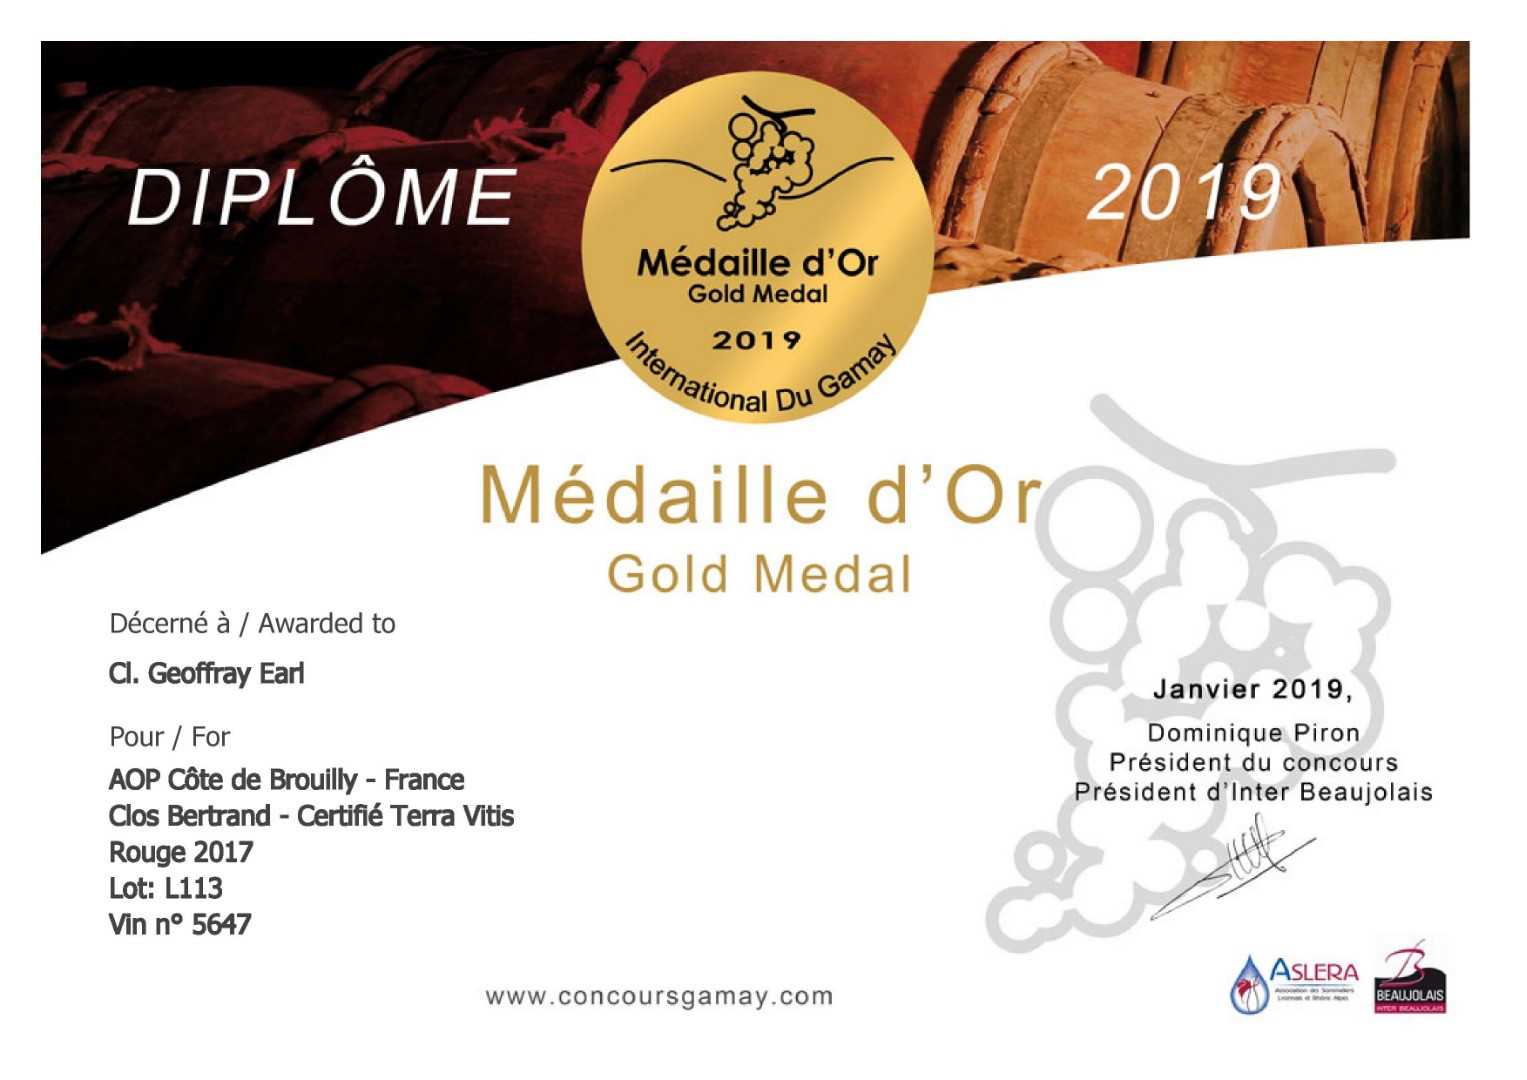 Concours International du Gamay 2019 - 2019/01